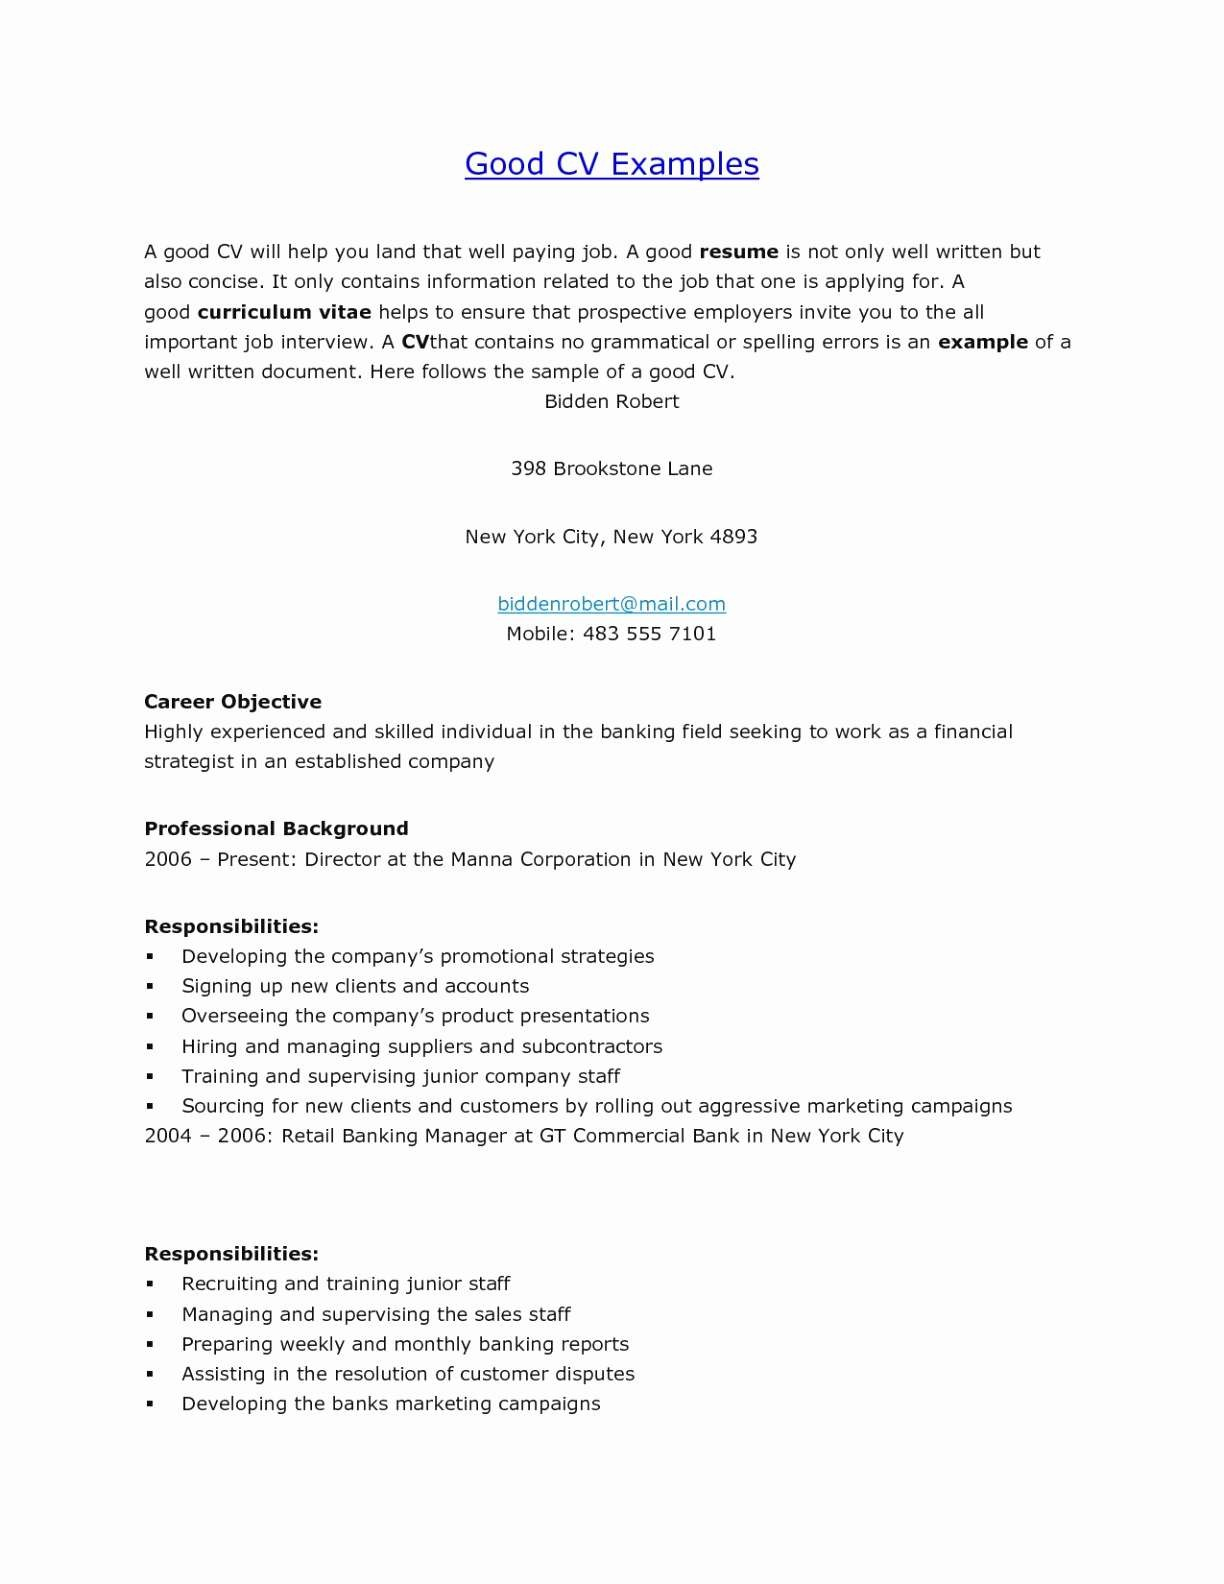 Collaborate Synonym for Resume - Collaborate Synonym Resume